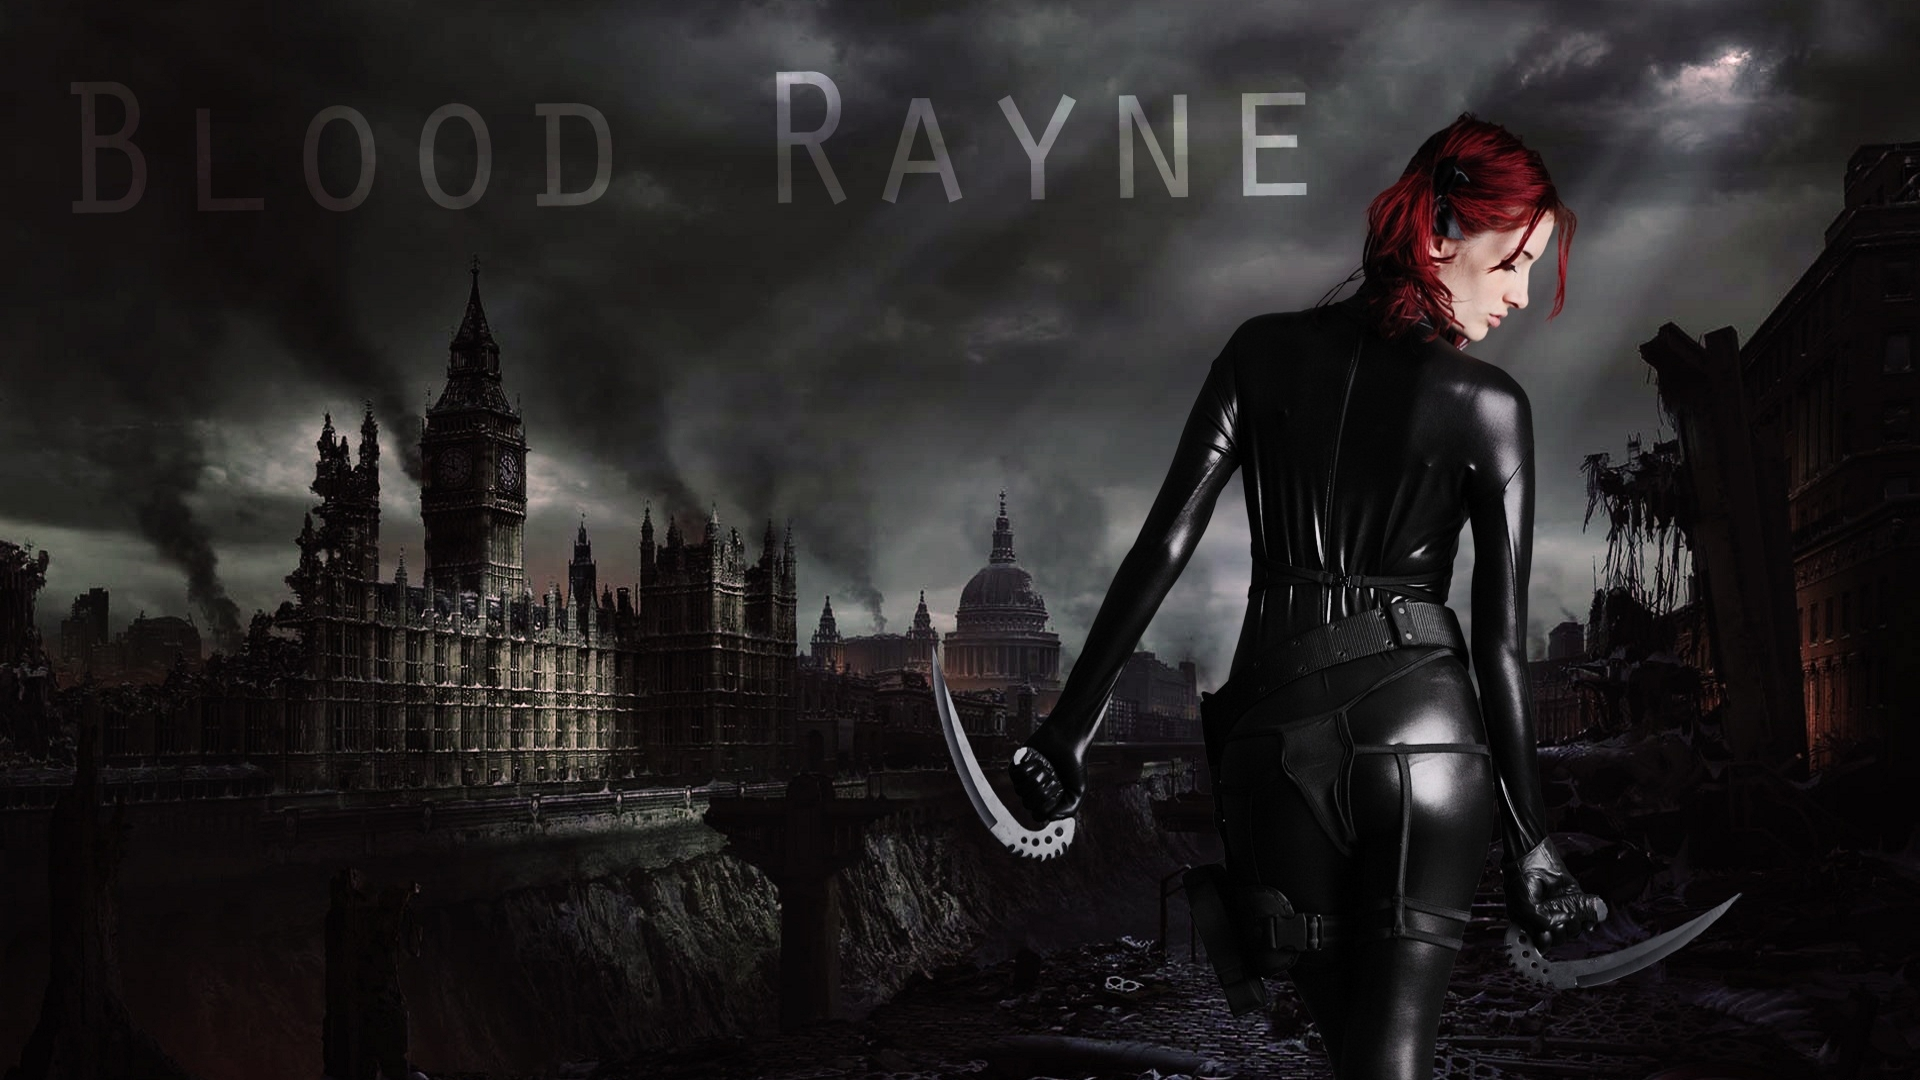 Celebrity - Susan Coffey  - Hot - Cute - Photography - Eyes - Hair - Movie - Bloodrayne - Weapon - Latex - Thong - Hellgate - London - Model - Video Game Wallpaper